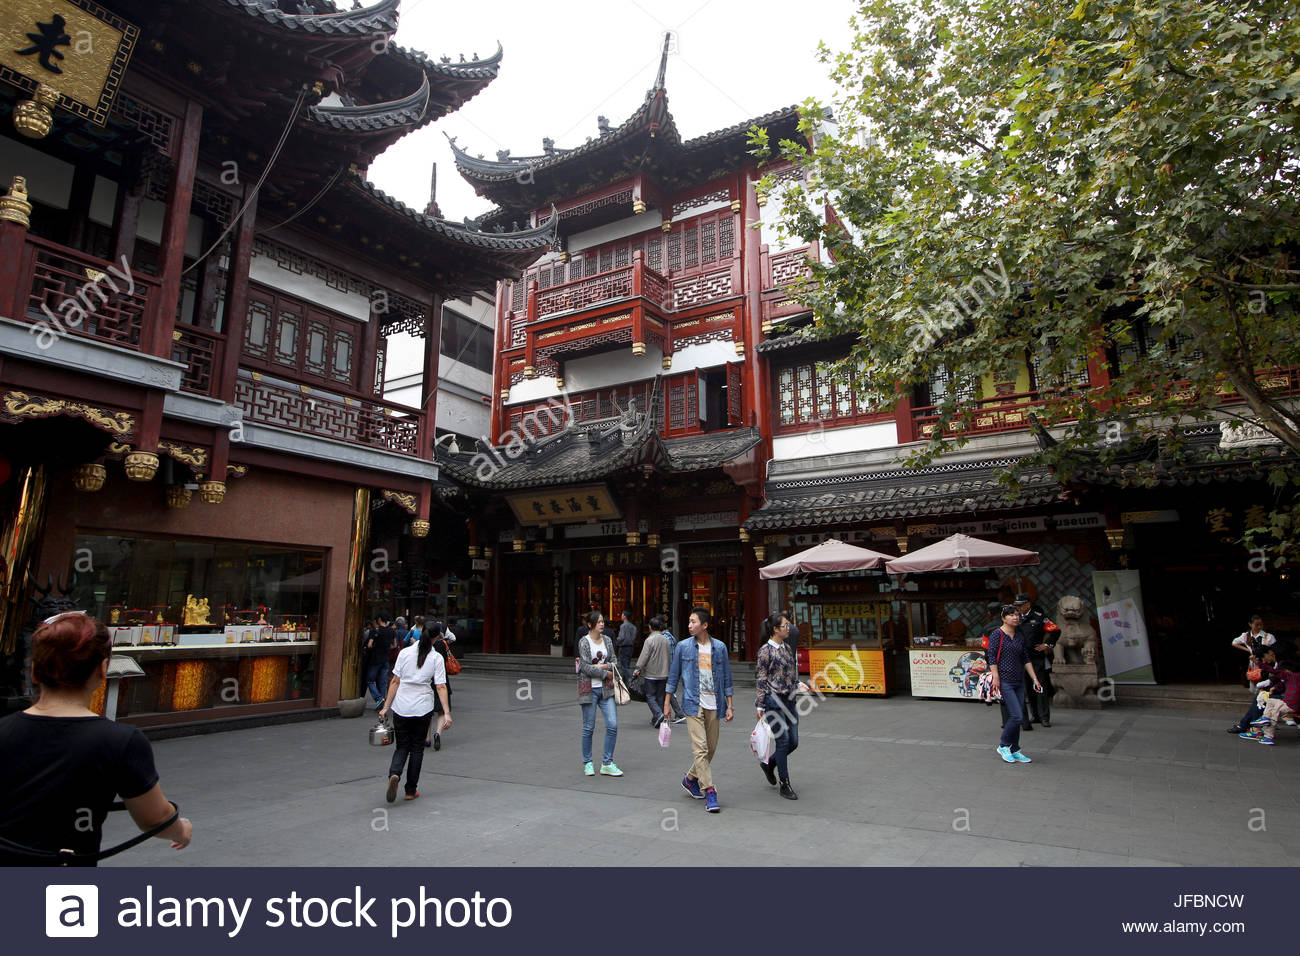 Tourists walk past traditional architecture in the Yuyuan Garden. - Stock Image